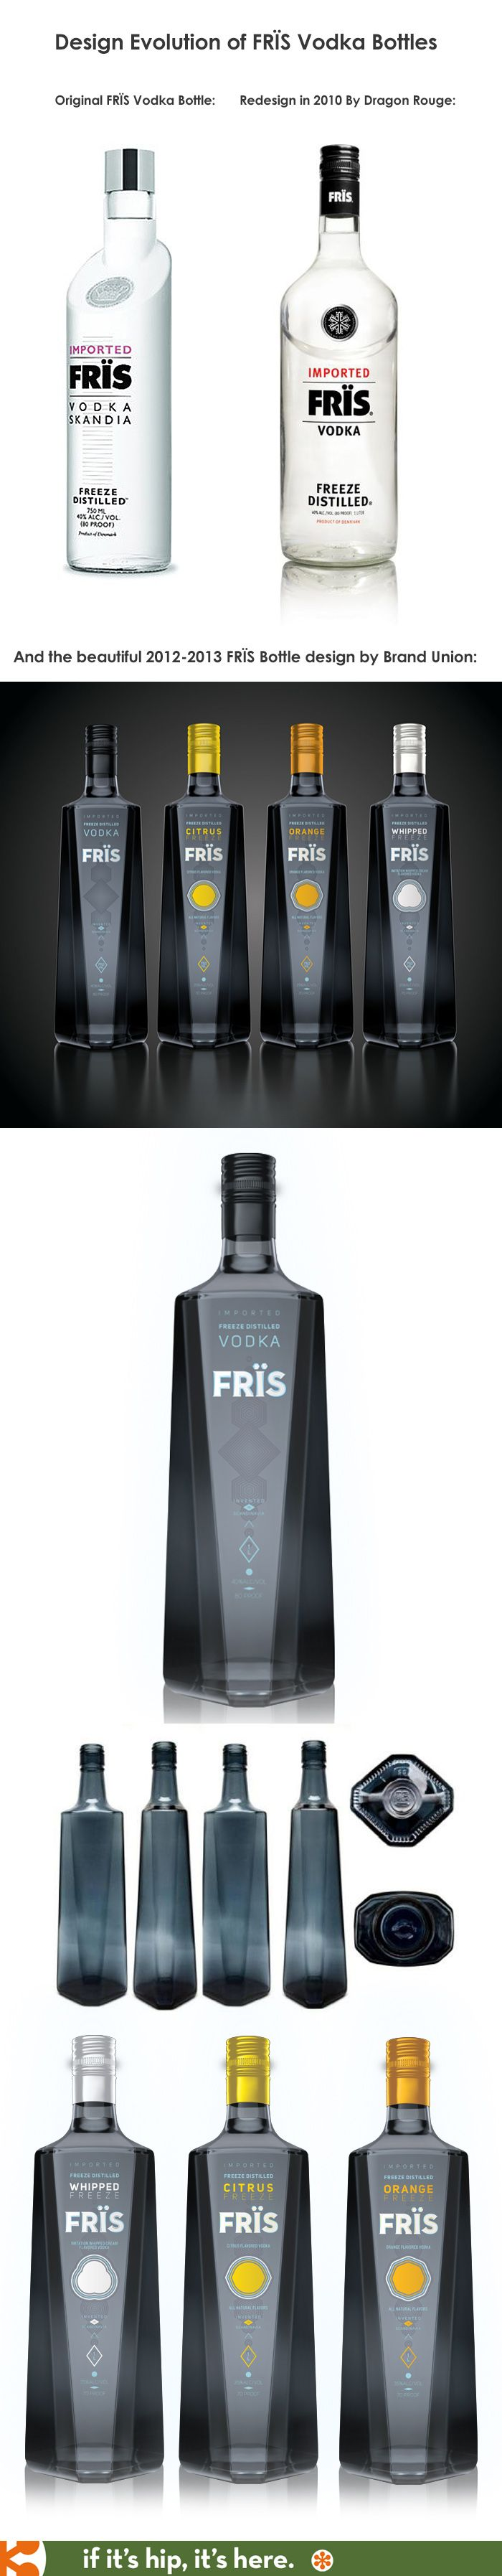 frs vodka porn VWVortex.com - What do you have in your